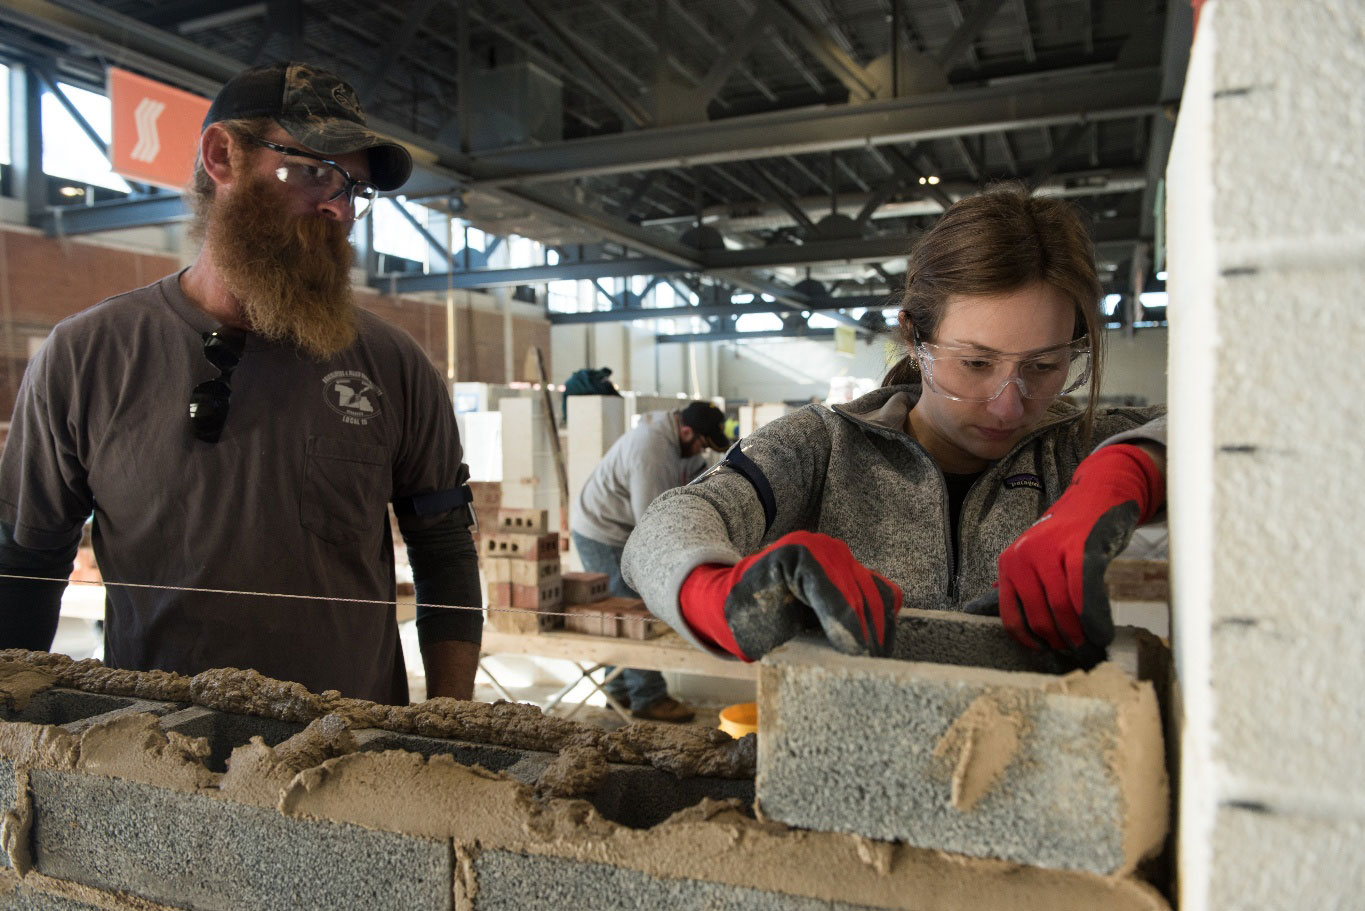 Kelsey Holmes (right) and Jason Bock of BAC Local 1 NB (left)in a hands-on block instruction